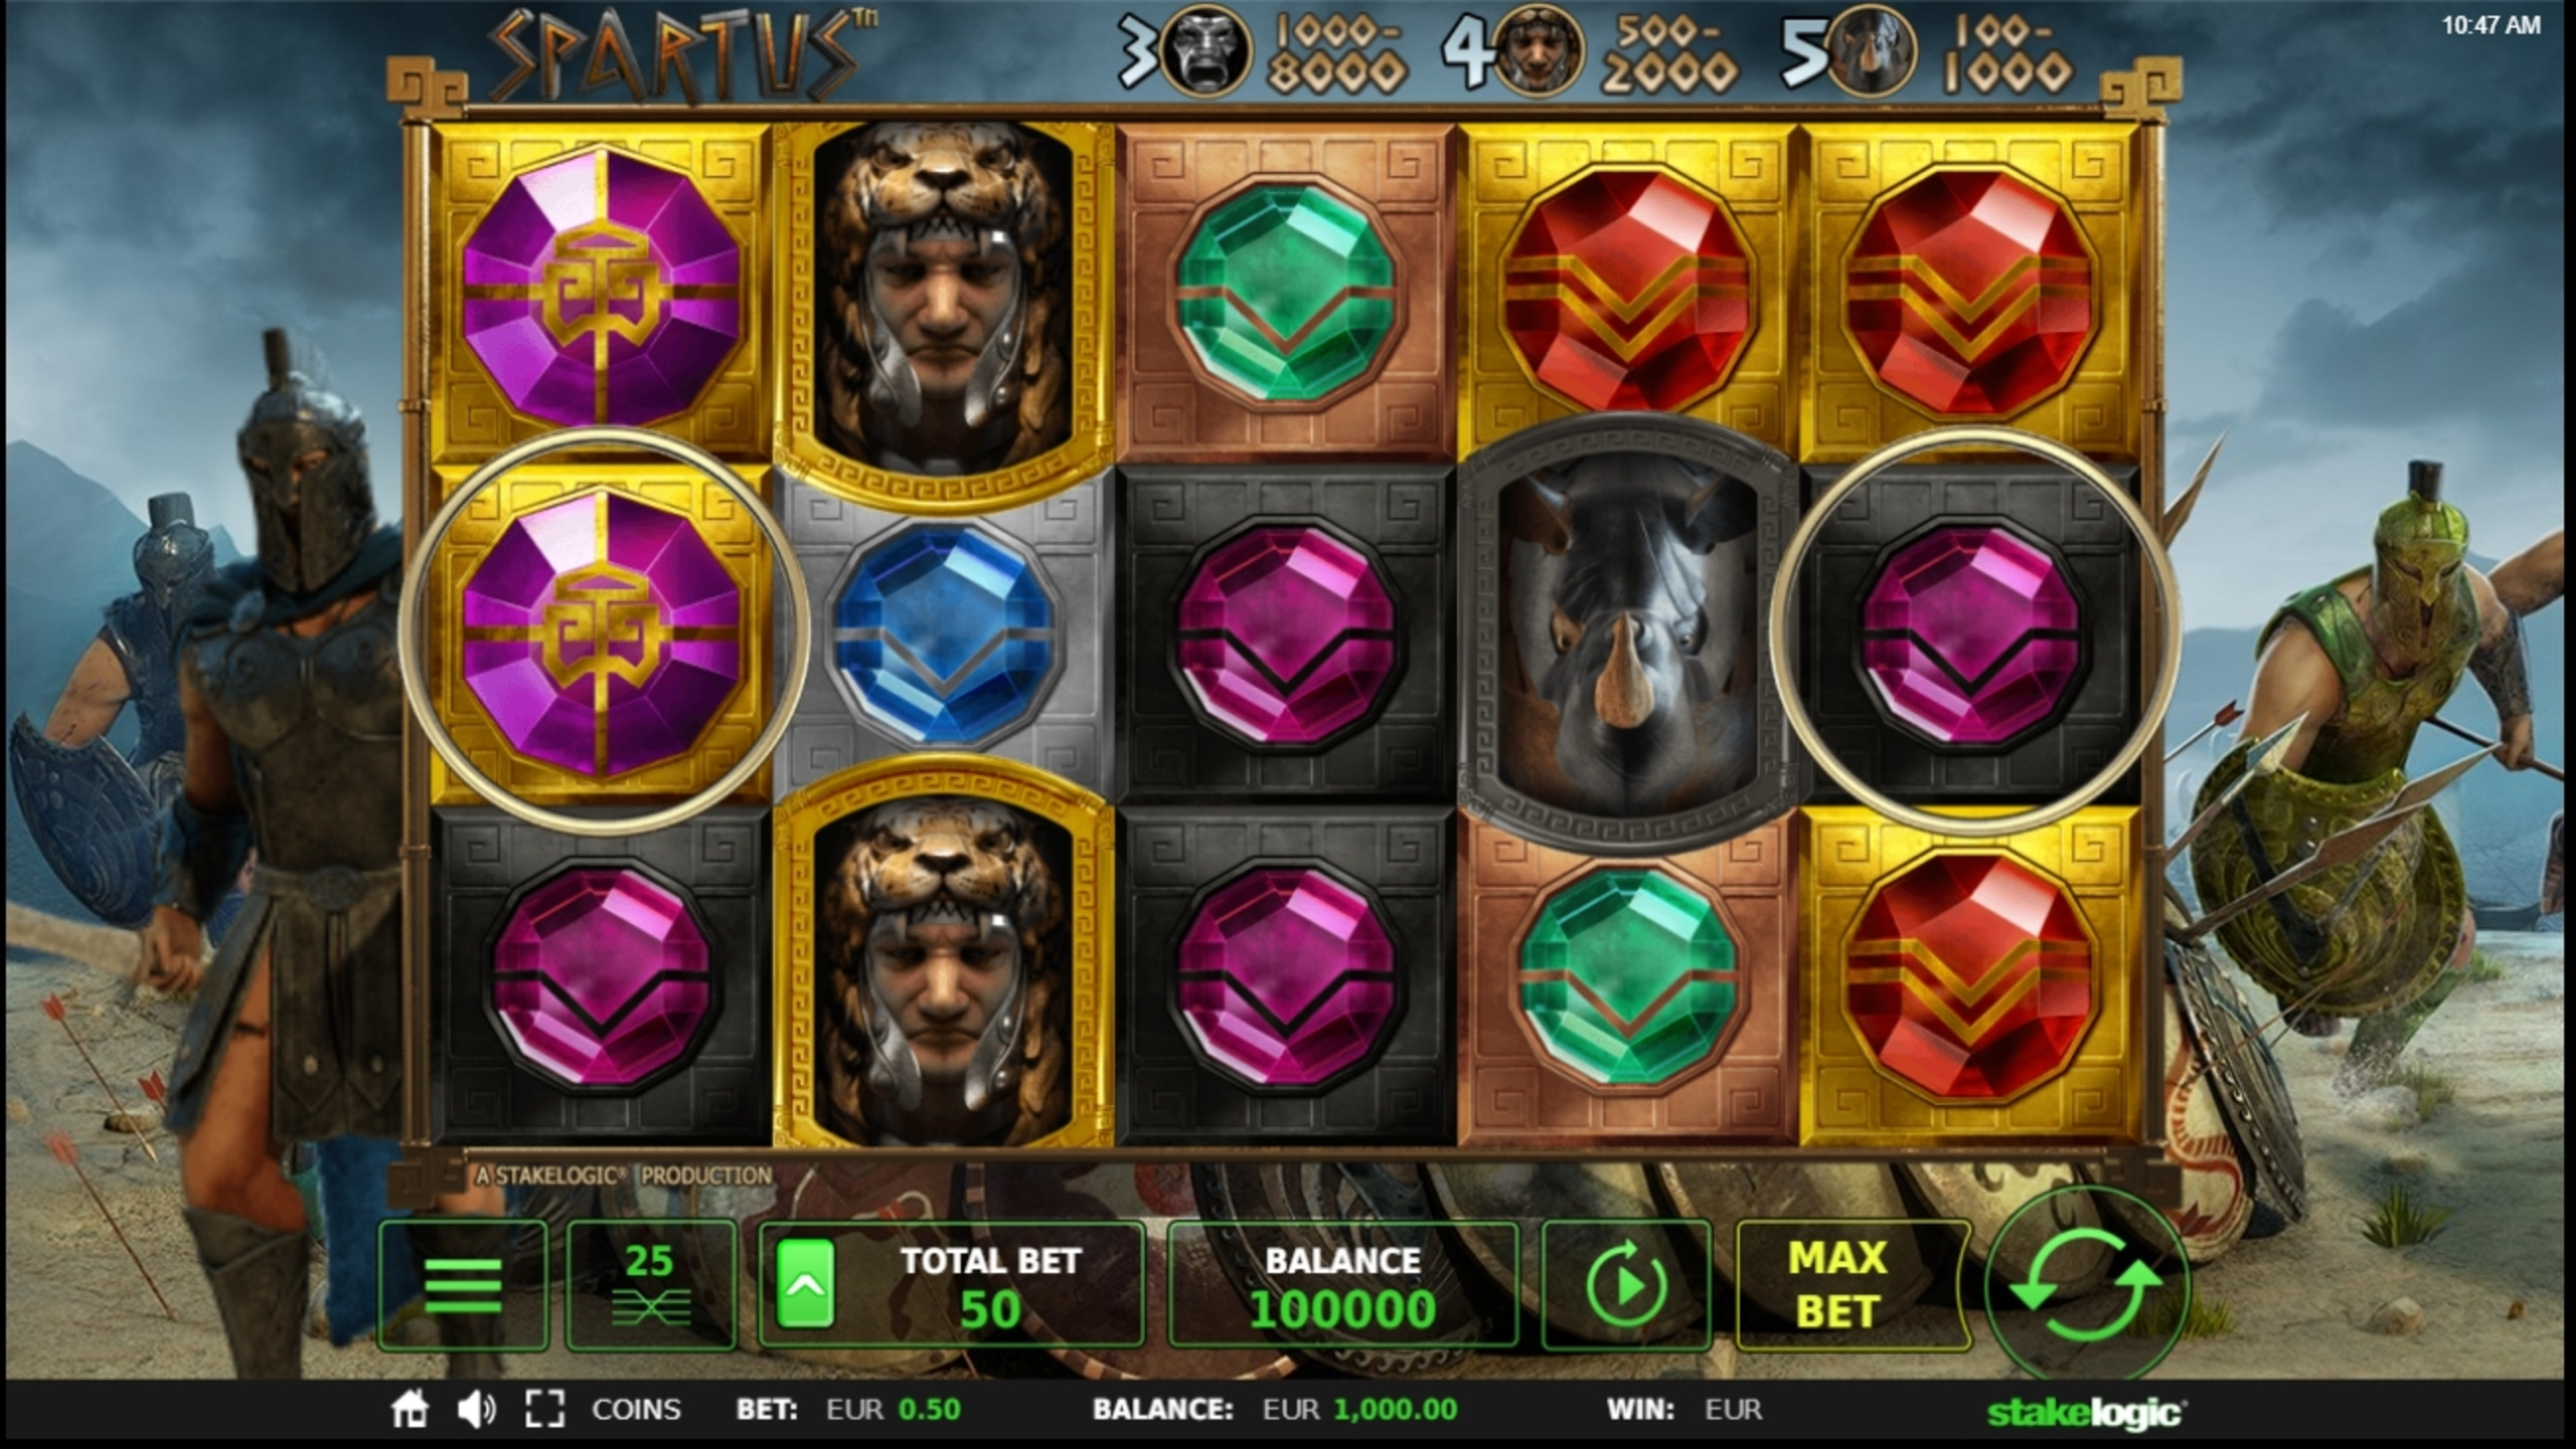 Reels in Spartus Slot Game by StakeLogic